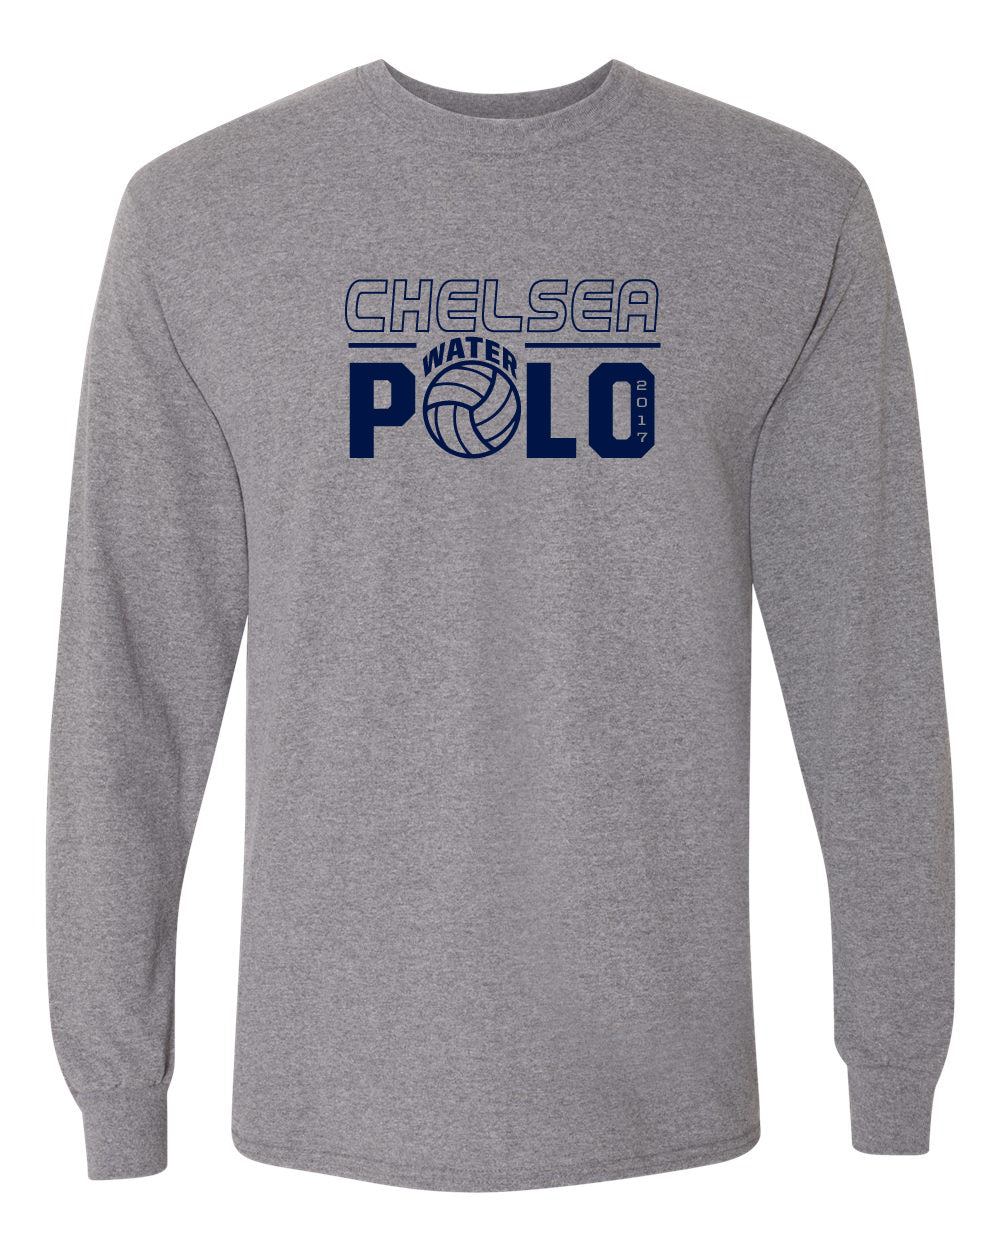 Adult Chelsea Water Polo Long Sleeve T-shirt